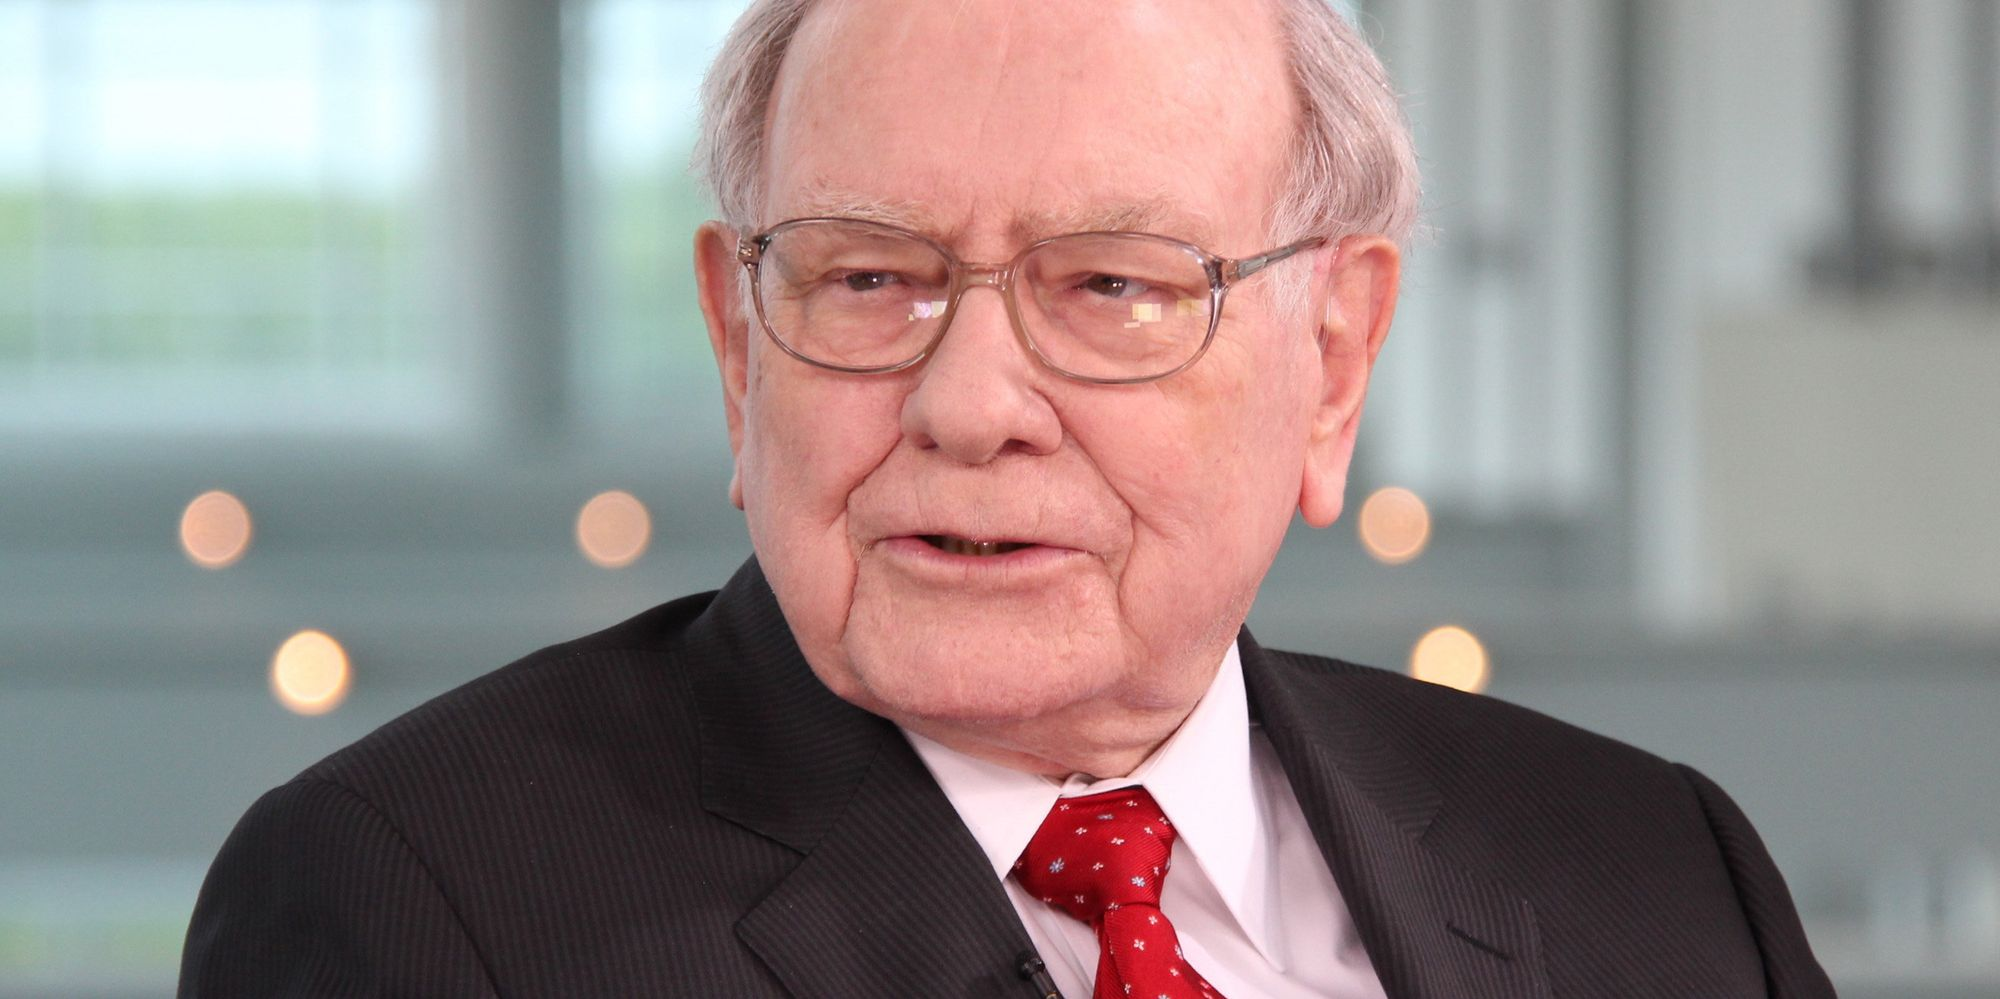 buffett scholarship essay questions America buffett corporate essay lesson  below are some common scholarship essay questions you can use these as a great starting point for a pesonal statement.